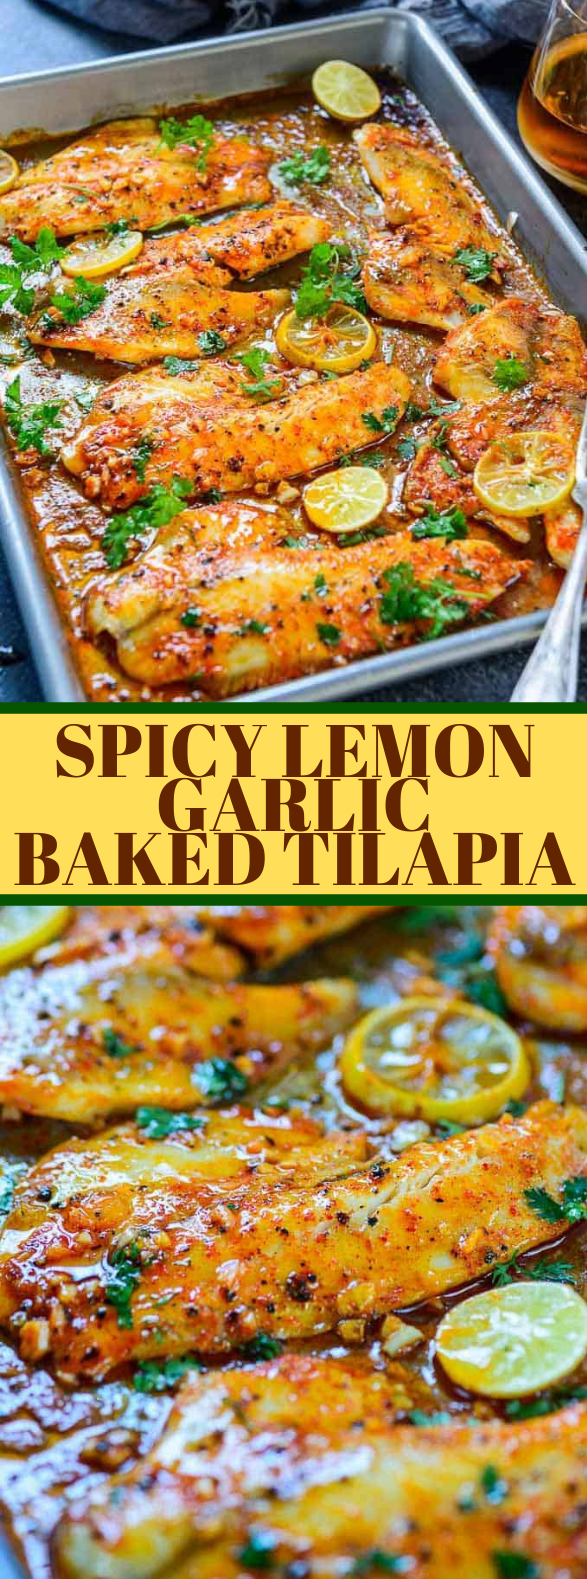 Photo of Spicy Lemon Garlic Baked Tilapia #dinner #heartymeal